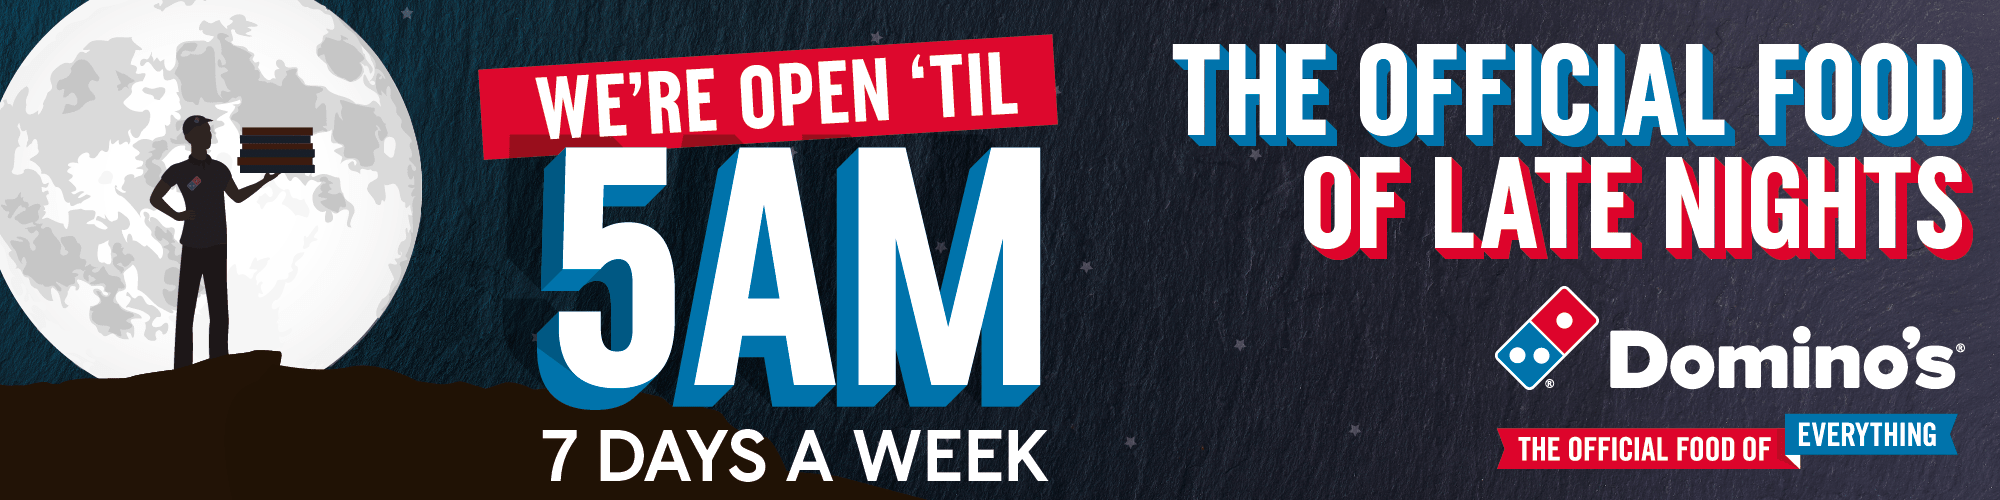 Dominos-open-til-5am